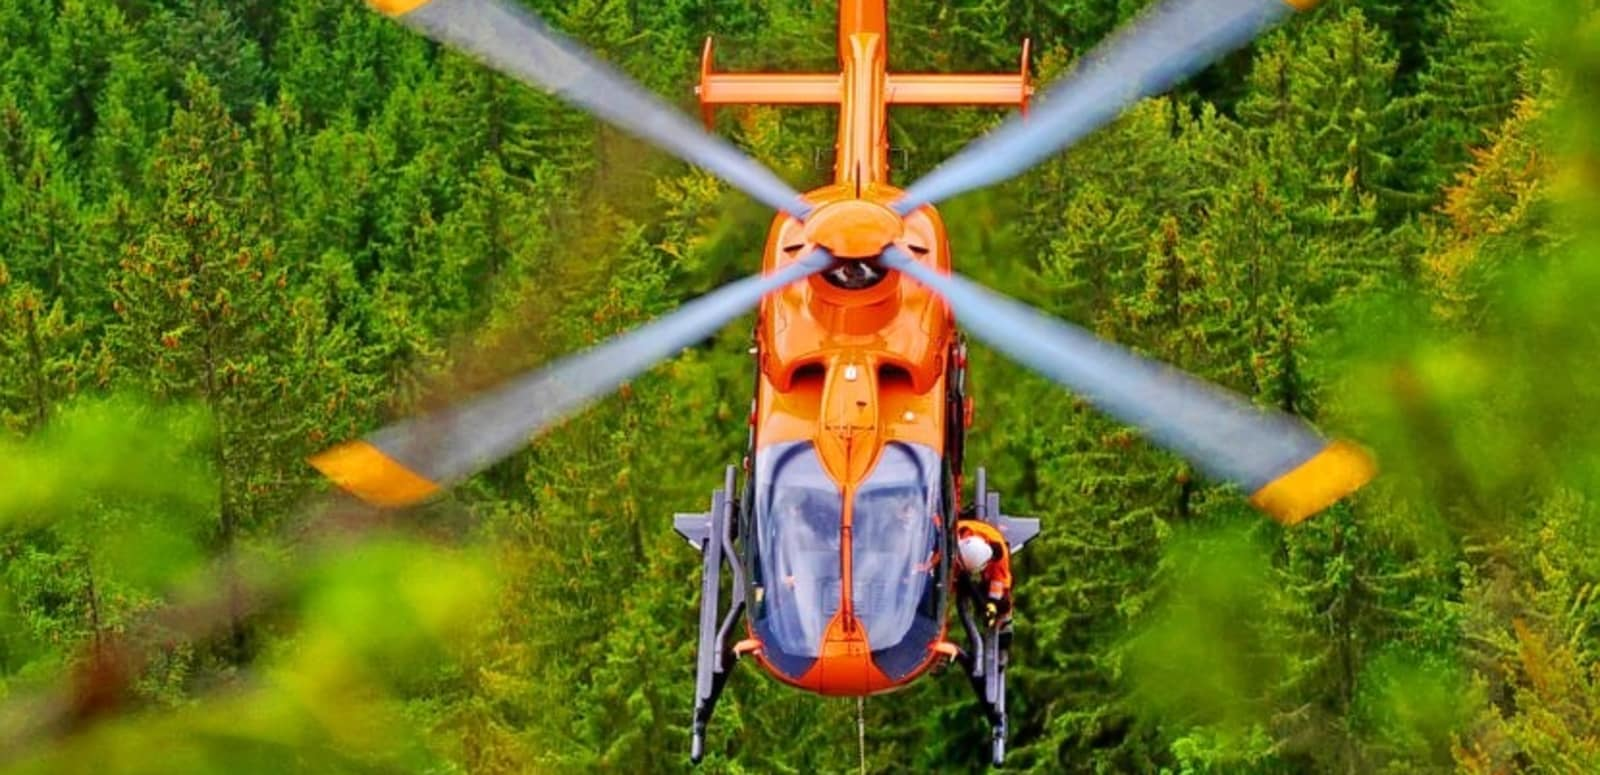 1465041254_eurocopter-becomes-turkey%e2%80%99s-preferred-supplier-of-air-ambulance-helicopters-with-an-order-for-17-ec135-aircraft-for-thk-go%cc%88kc%cc%a7en-aviation-830x554.jpg